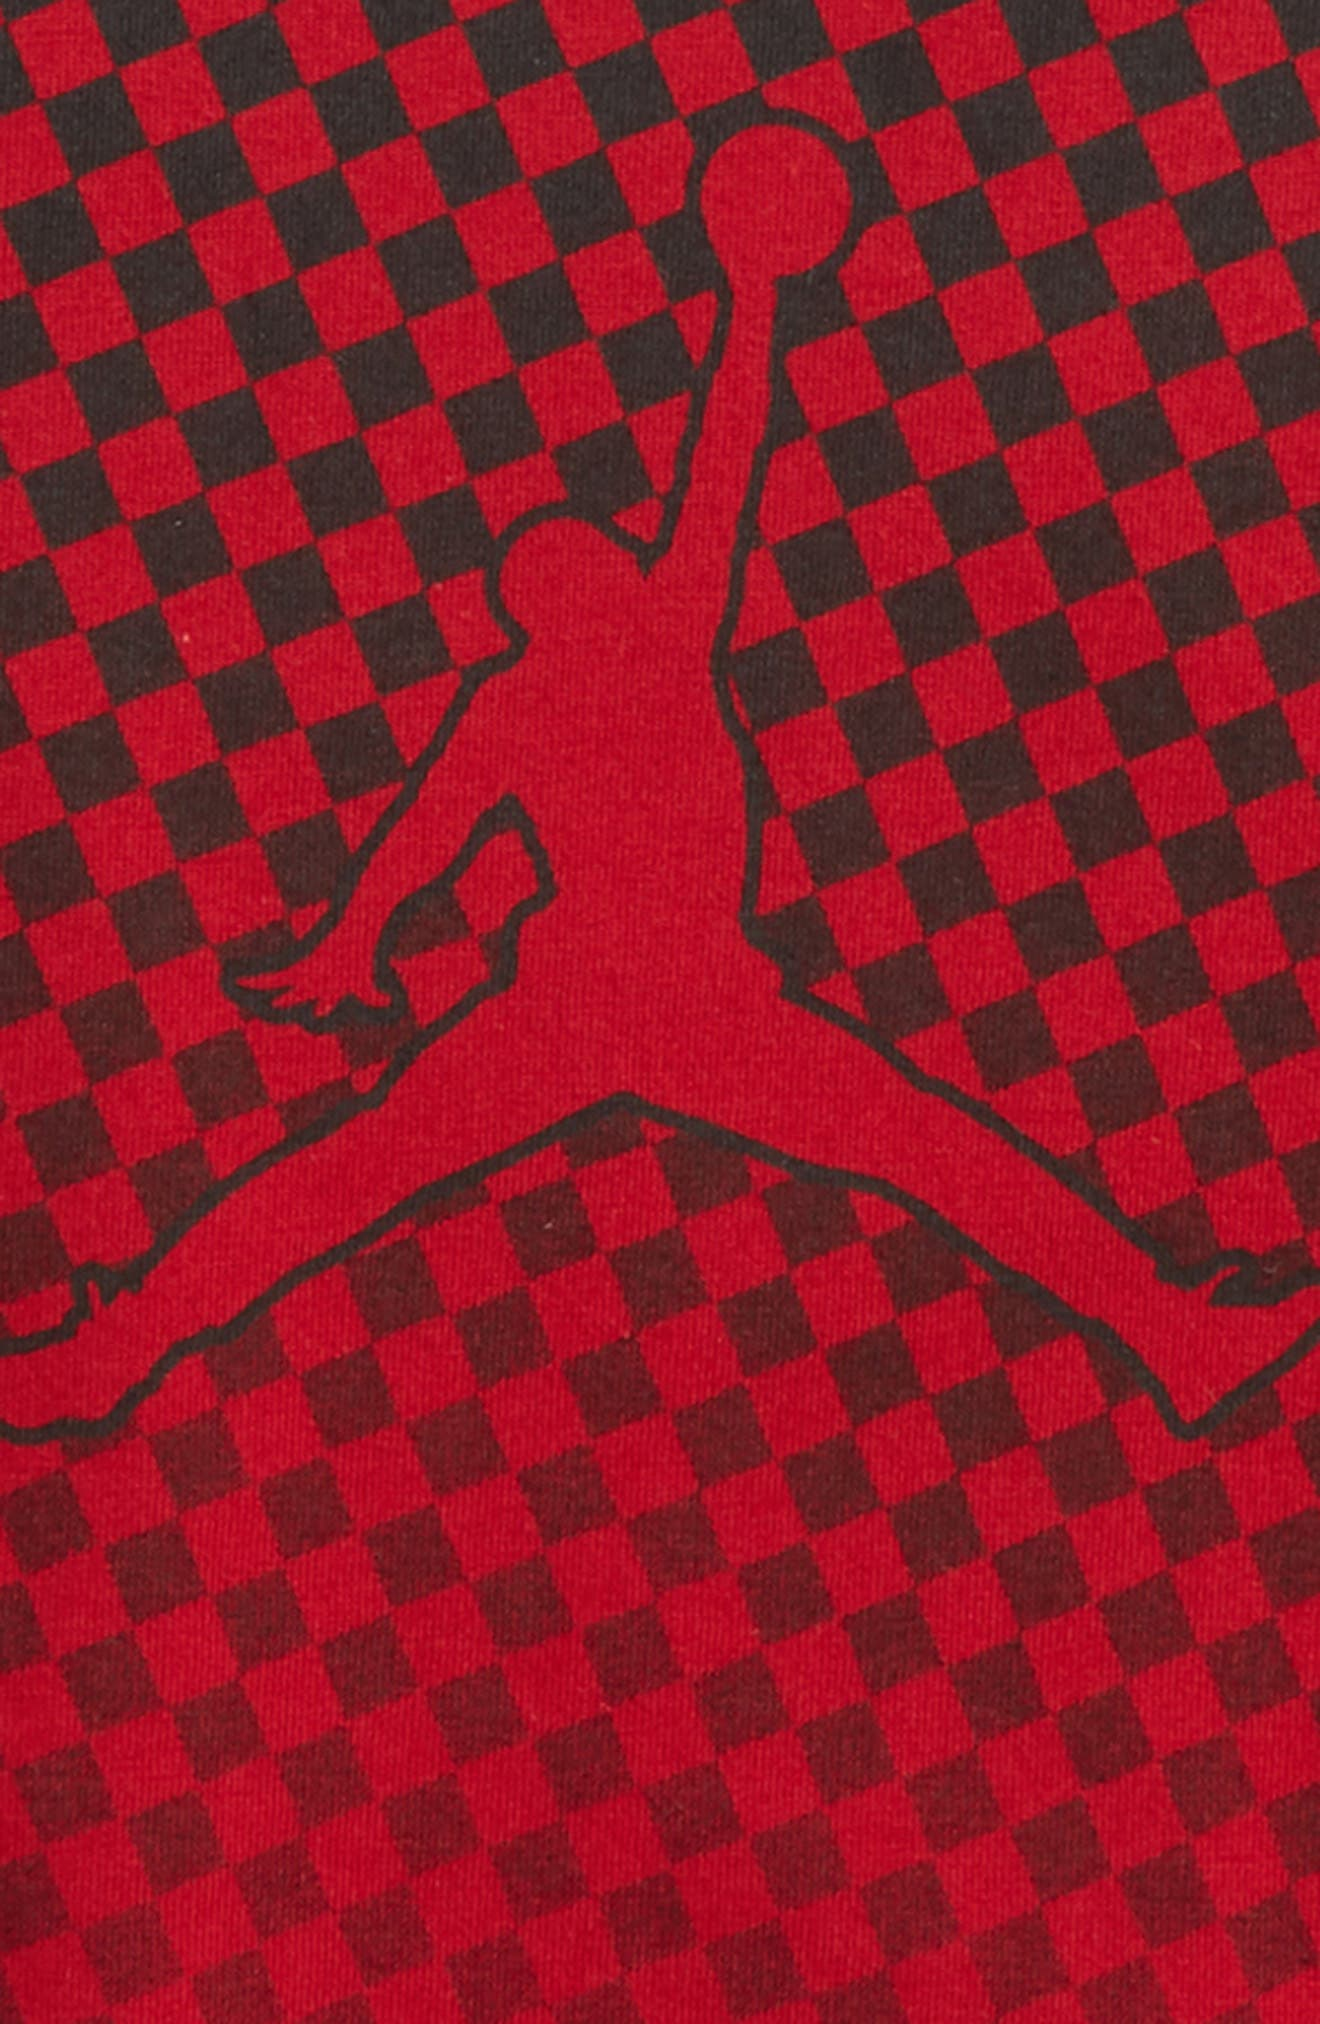 Jordan Carbon High T-Shirt,                             Alternate thumbnail 2, color,                             606